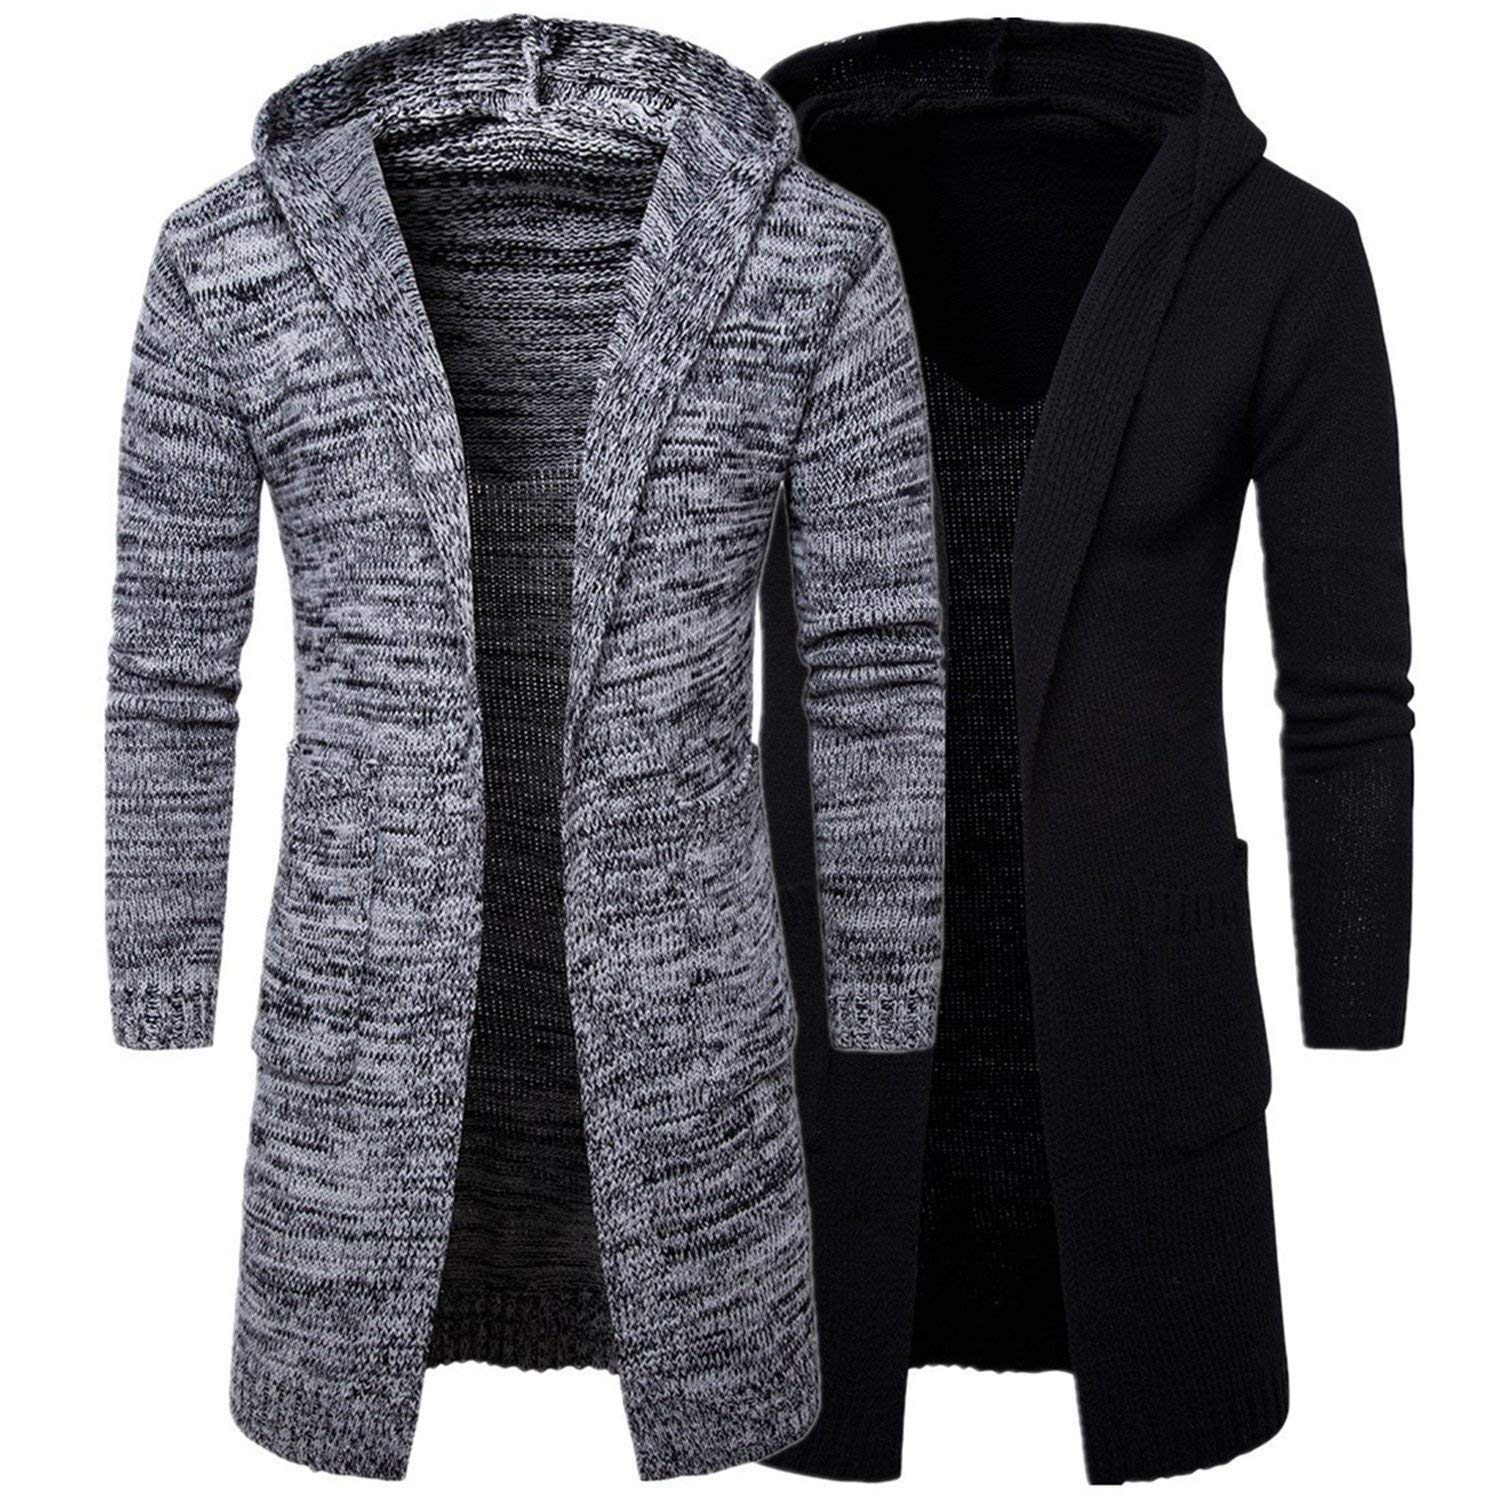 Freezing Mens Winter Warm Sweaters Long Hooded Outwear Coat Knitted Sweaters for Male 2 Color Thick Jackets